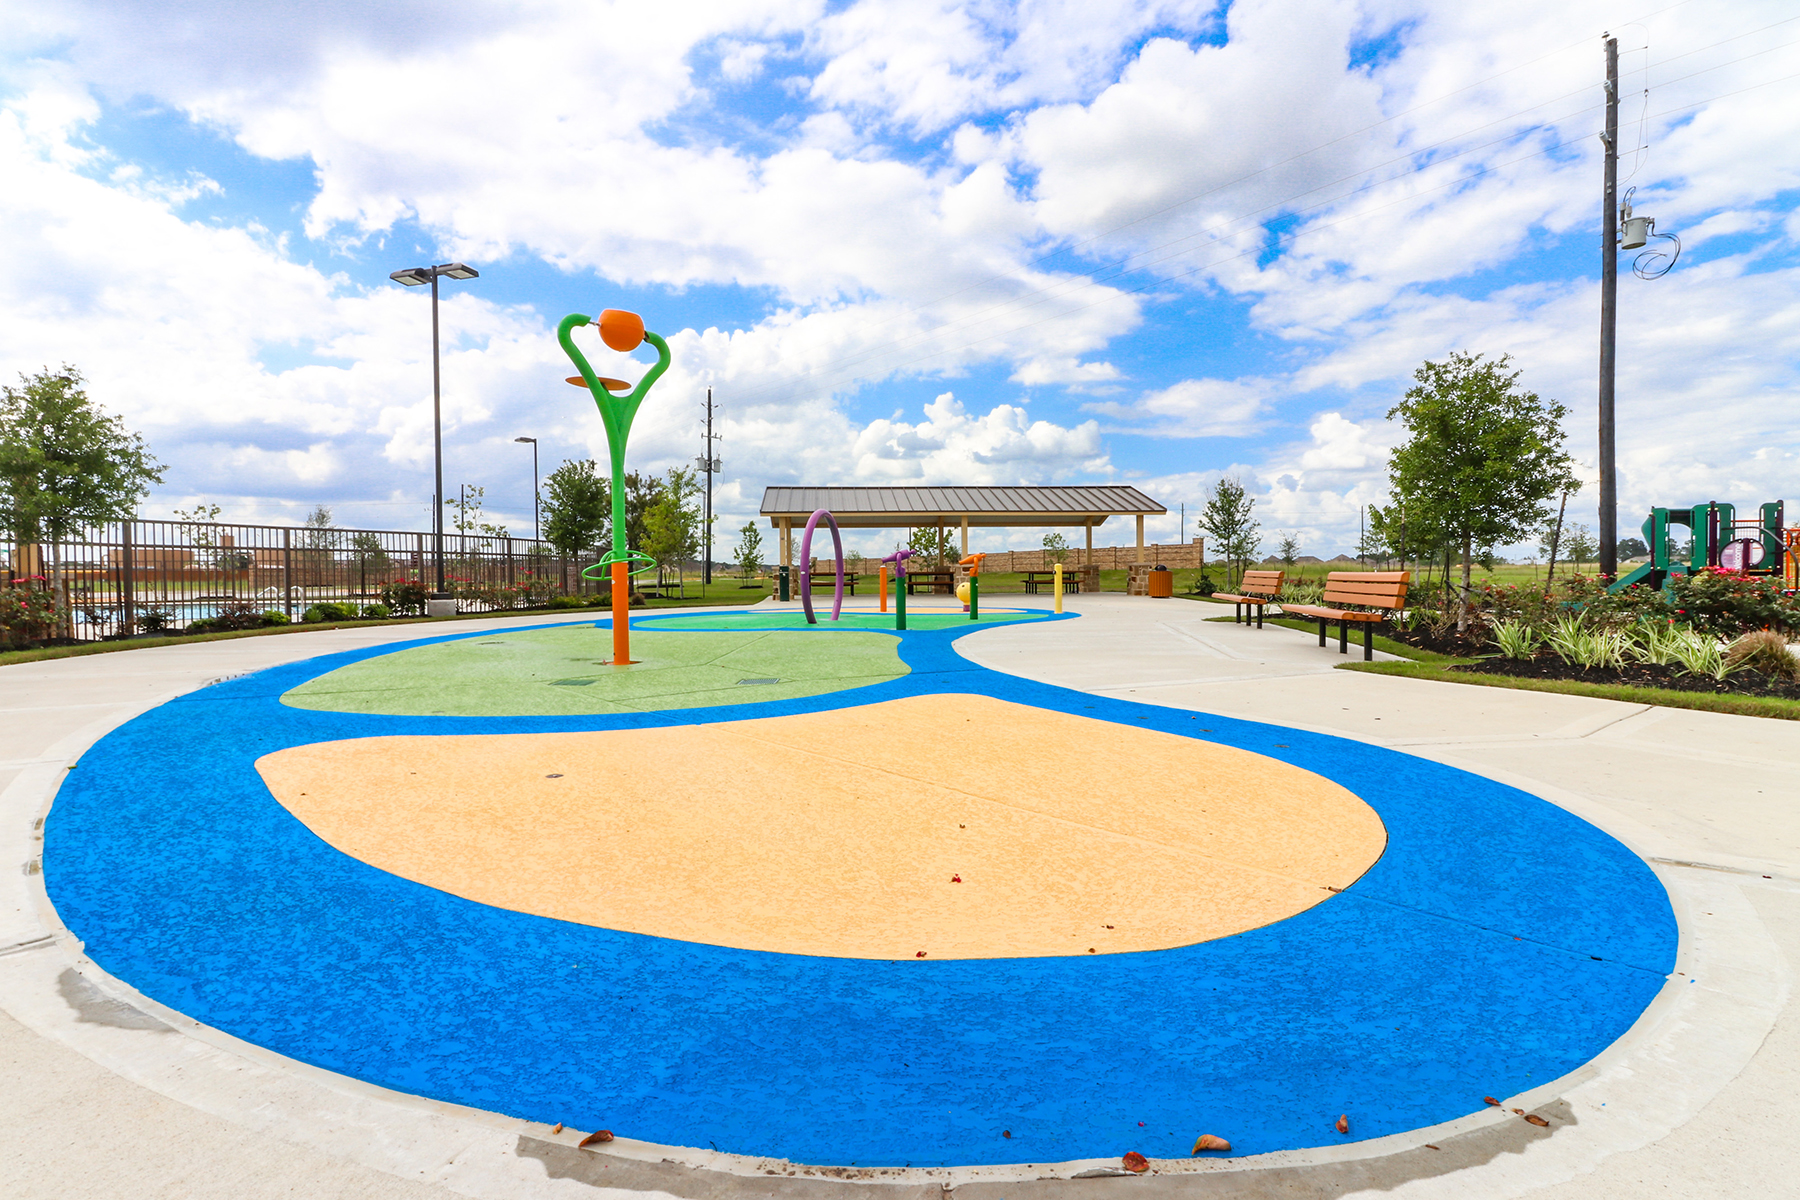 Laurel Park Playground